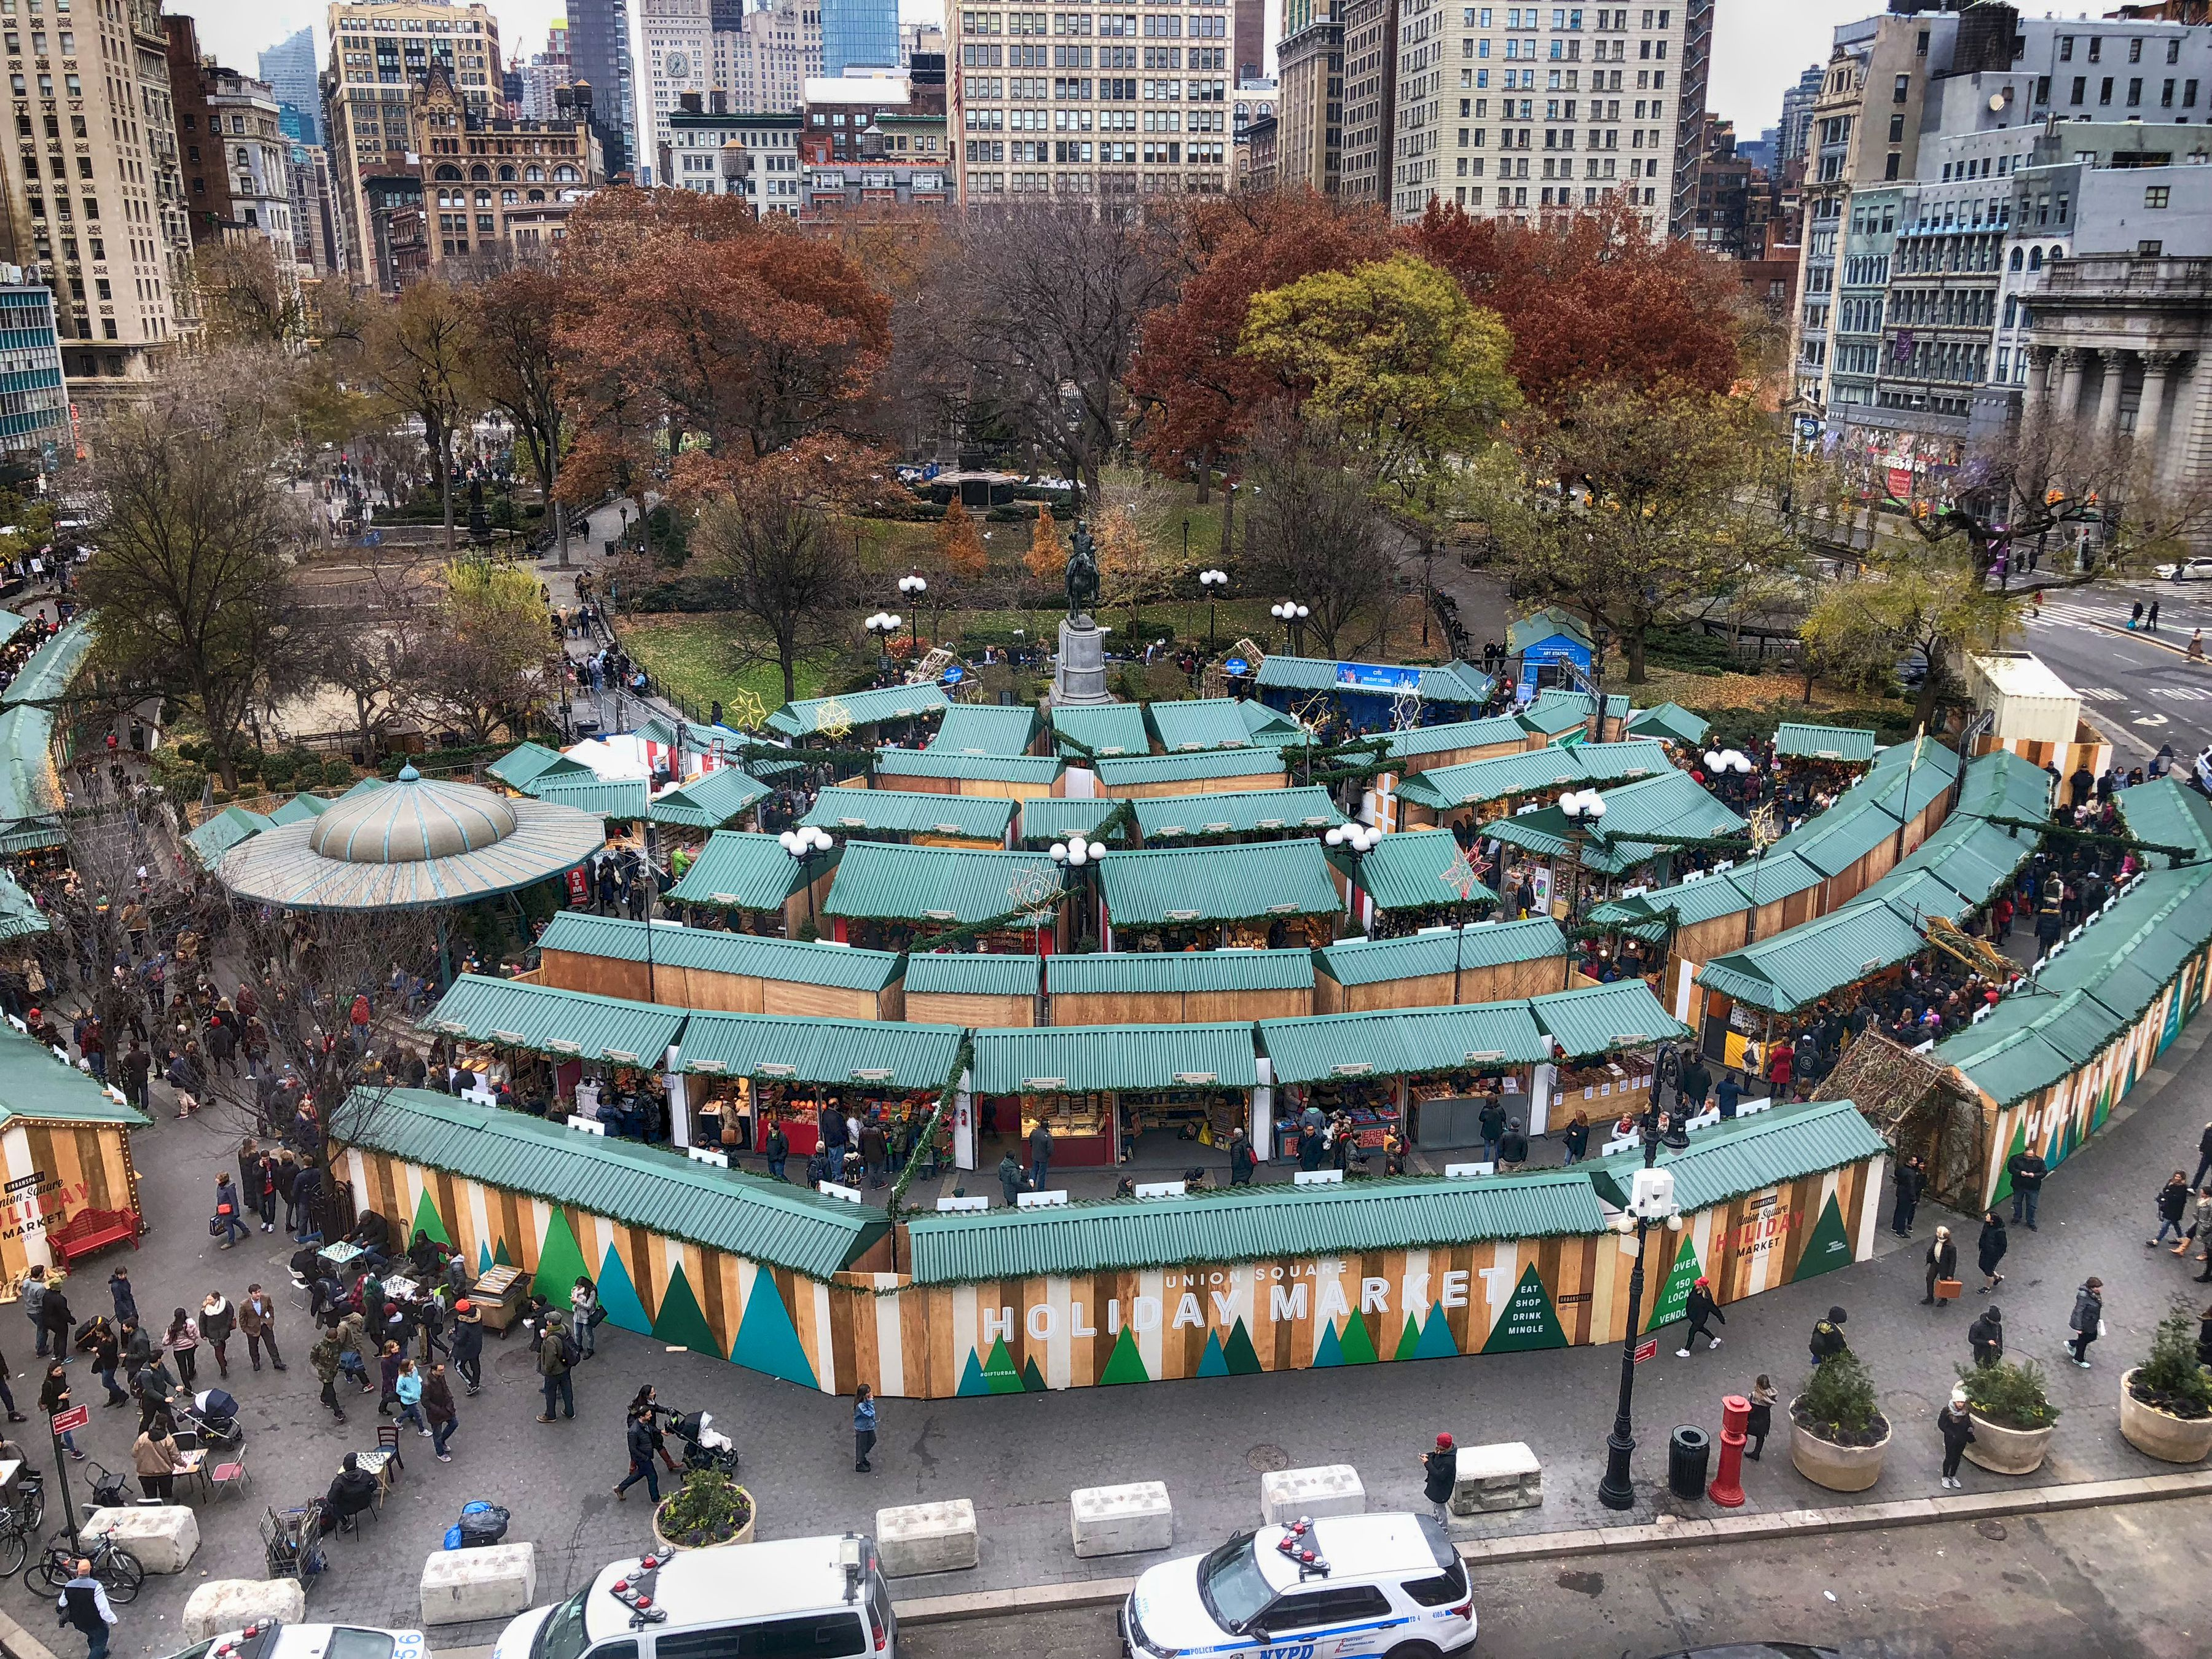 Union Square Park in New York City, New York